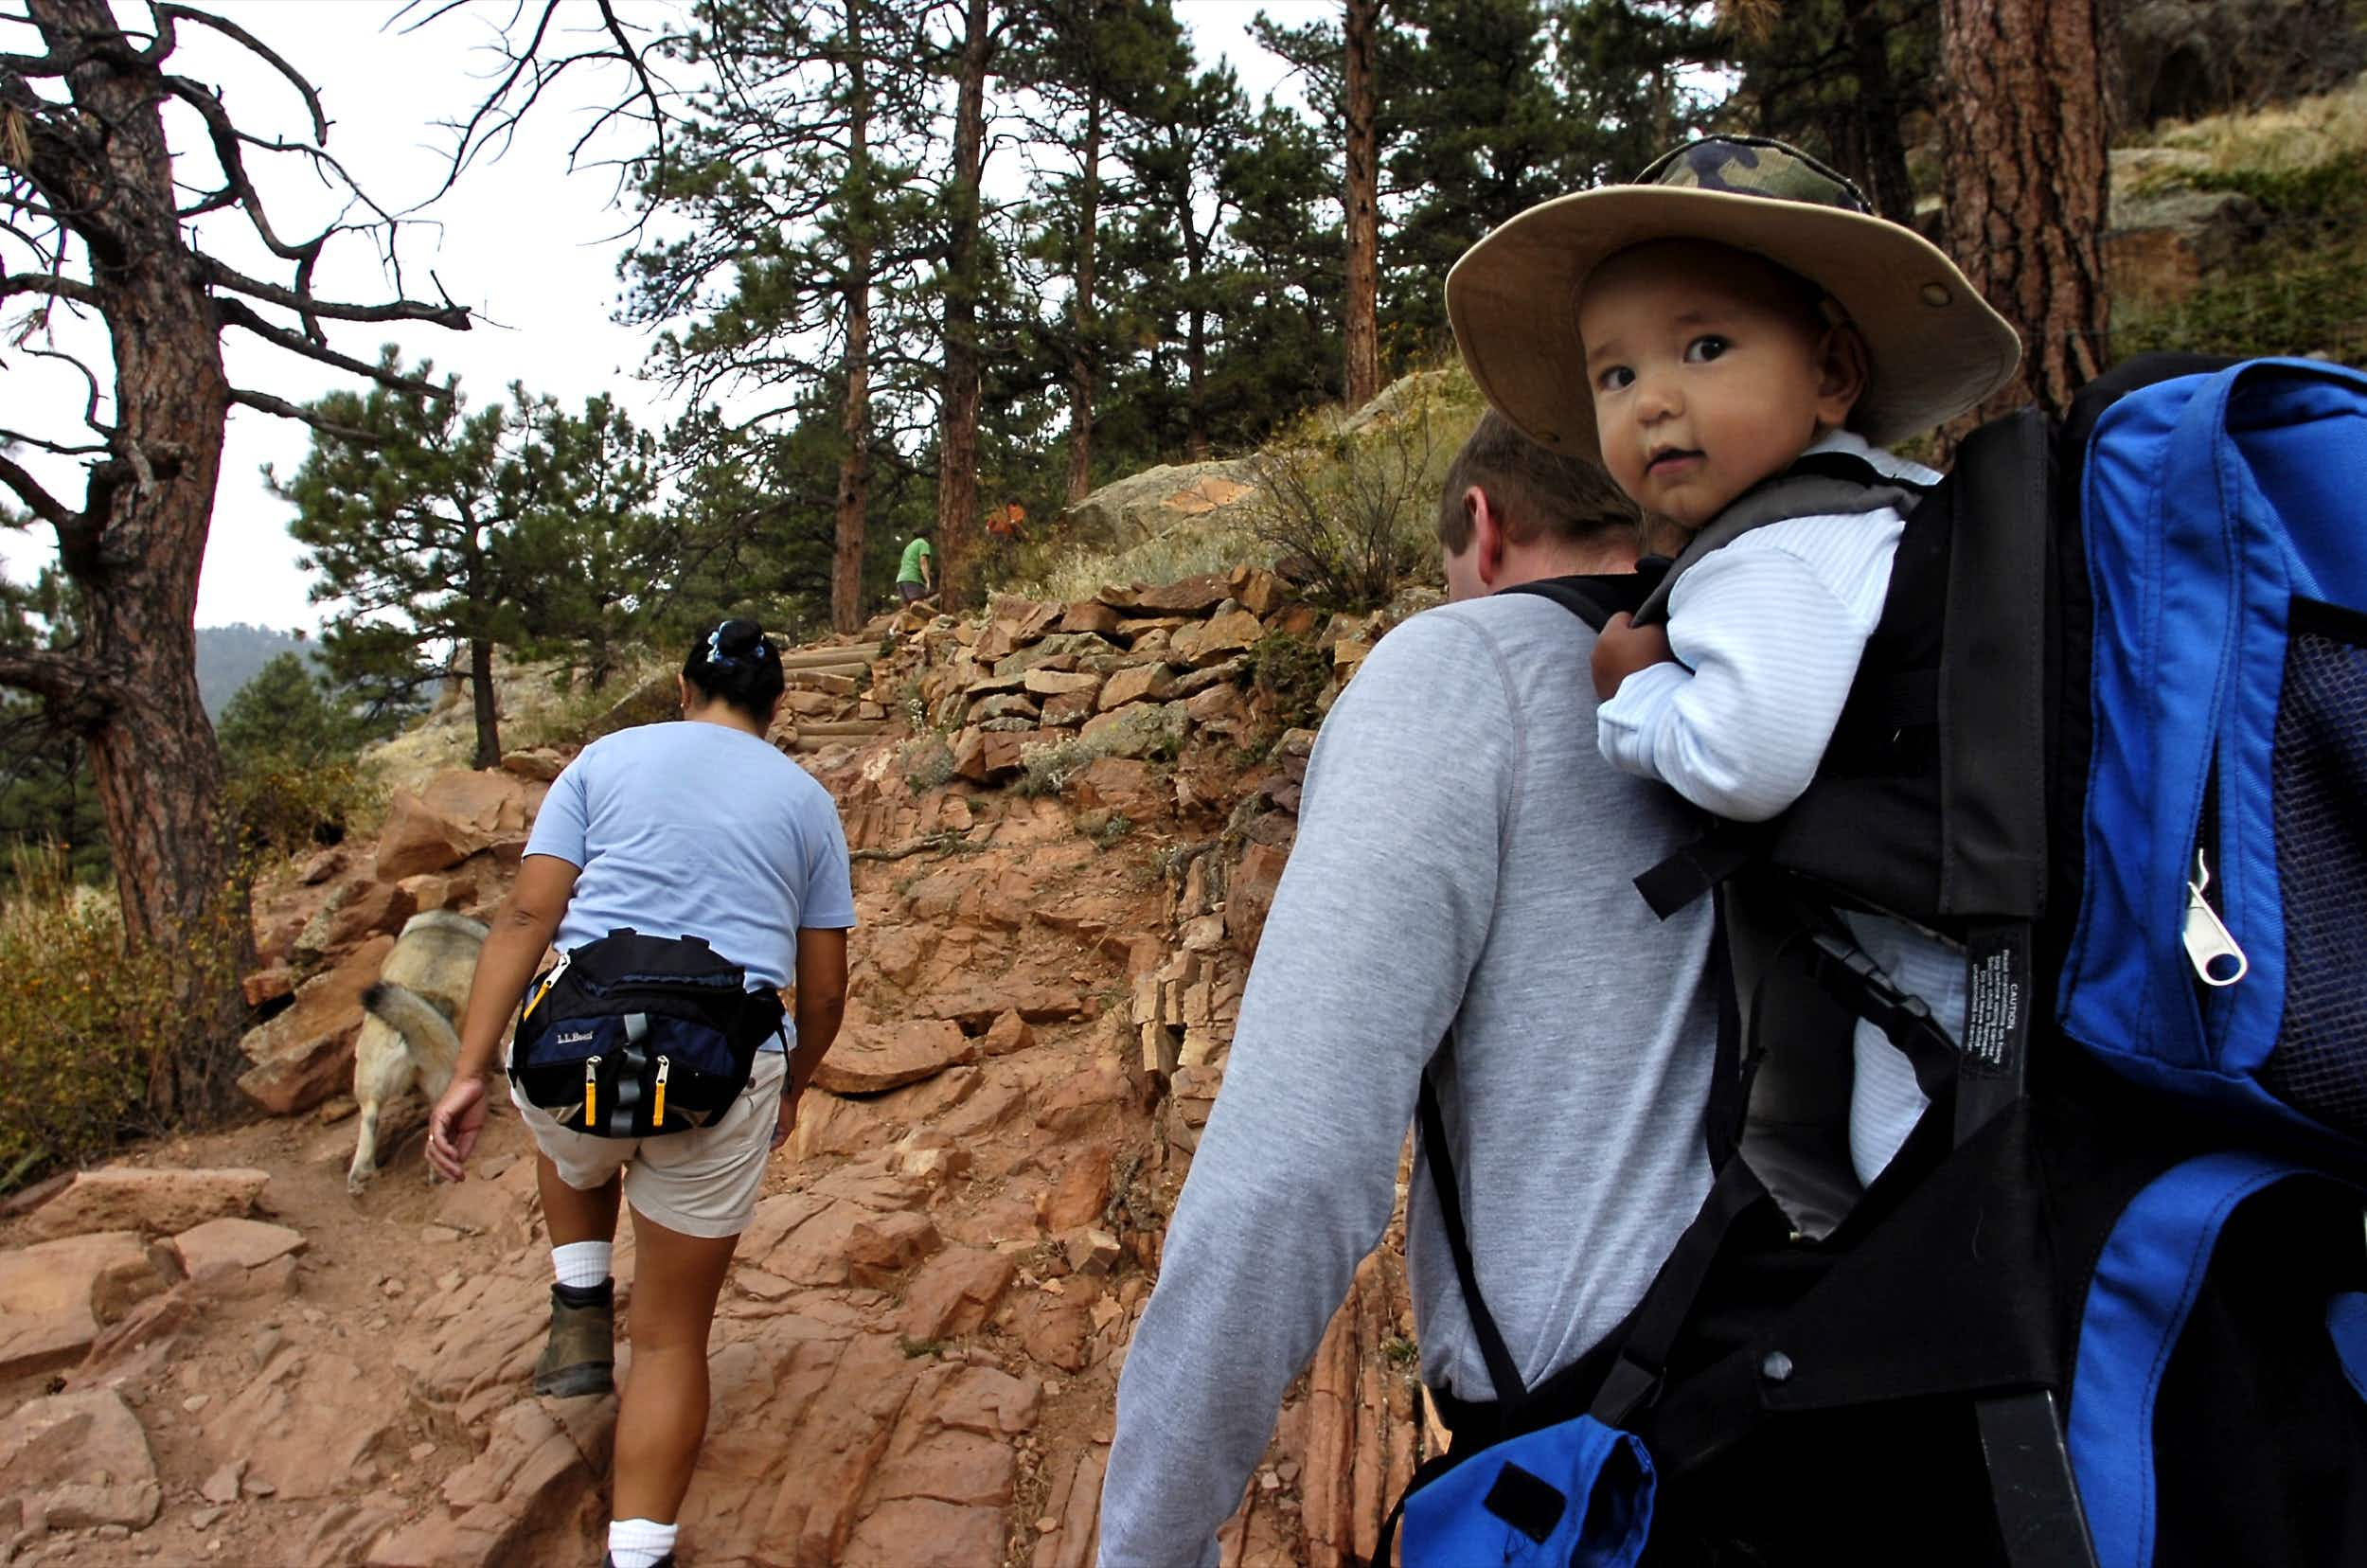 A couple hikes with their nine-month-old son at Mt. Sanitas near Boulder. The trails have something for everyone. © Marty Caivano / Digital First Media / Boulder Daily Camera via Getty Images